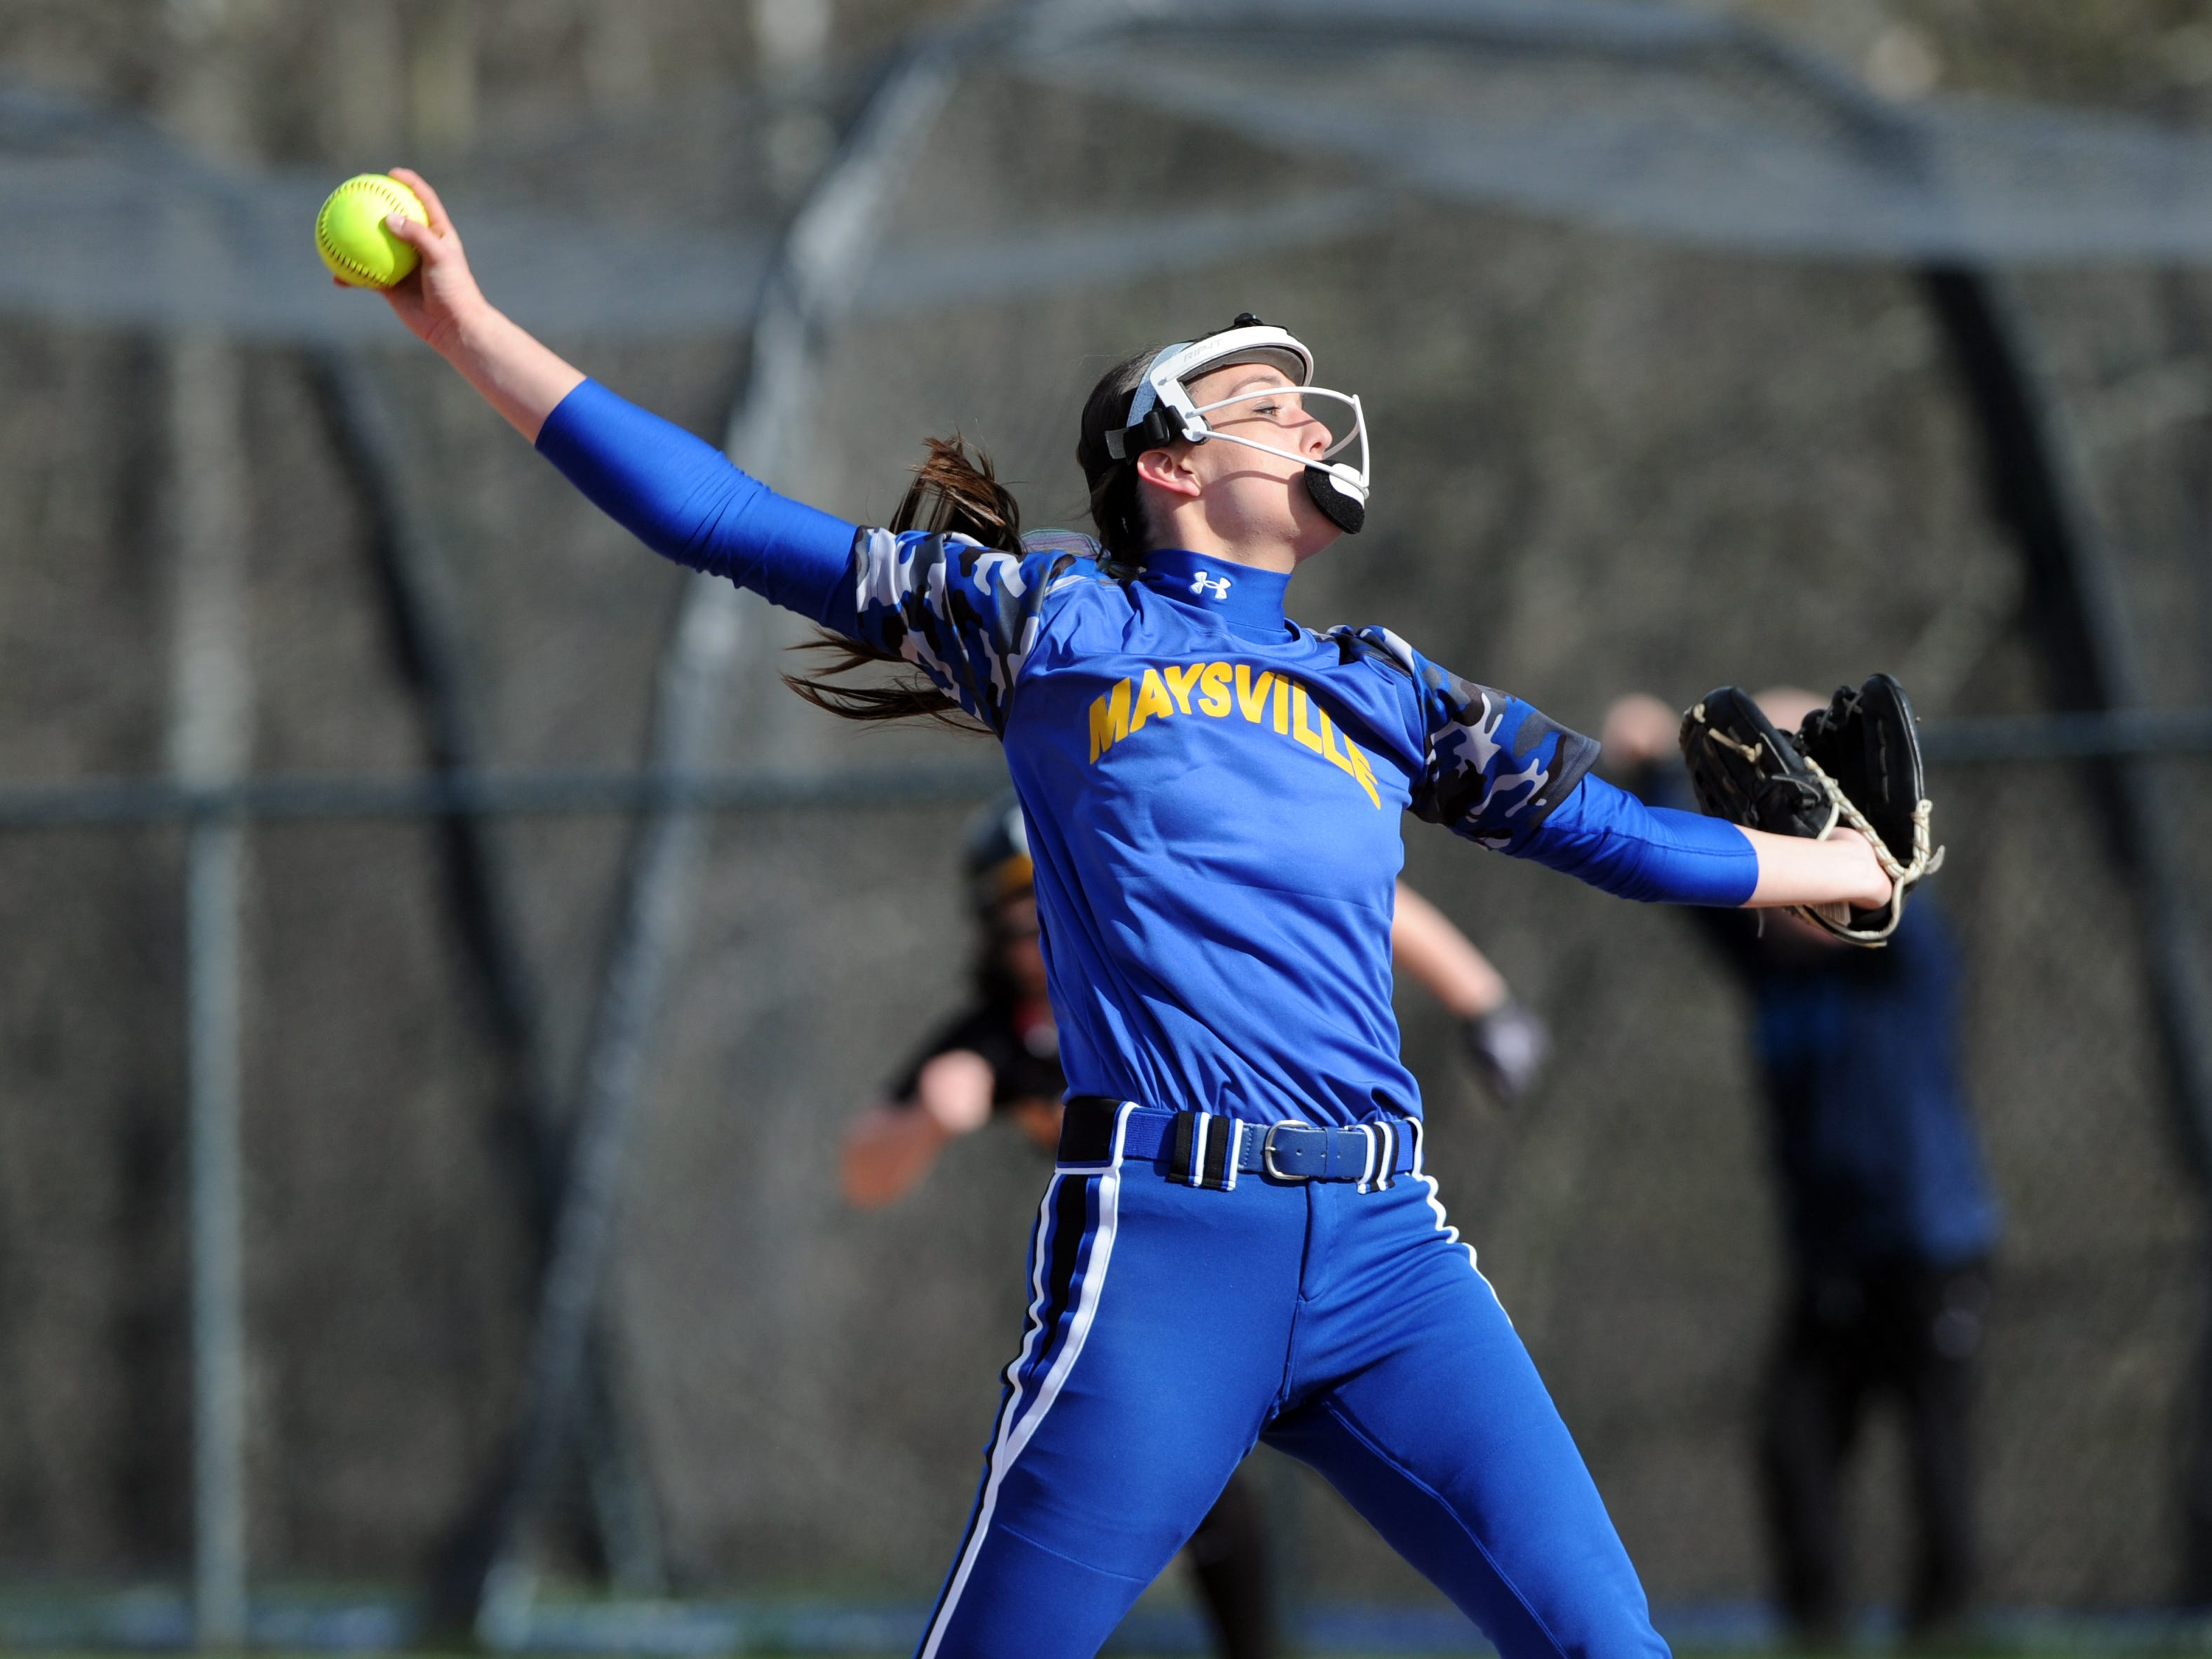 Maysville's Madison Riggle pitches against Tri-Valley. The Panthers shut out the Scotties 5-0 on Wednesday night.